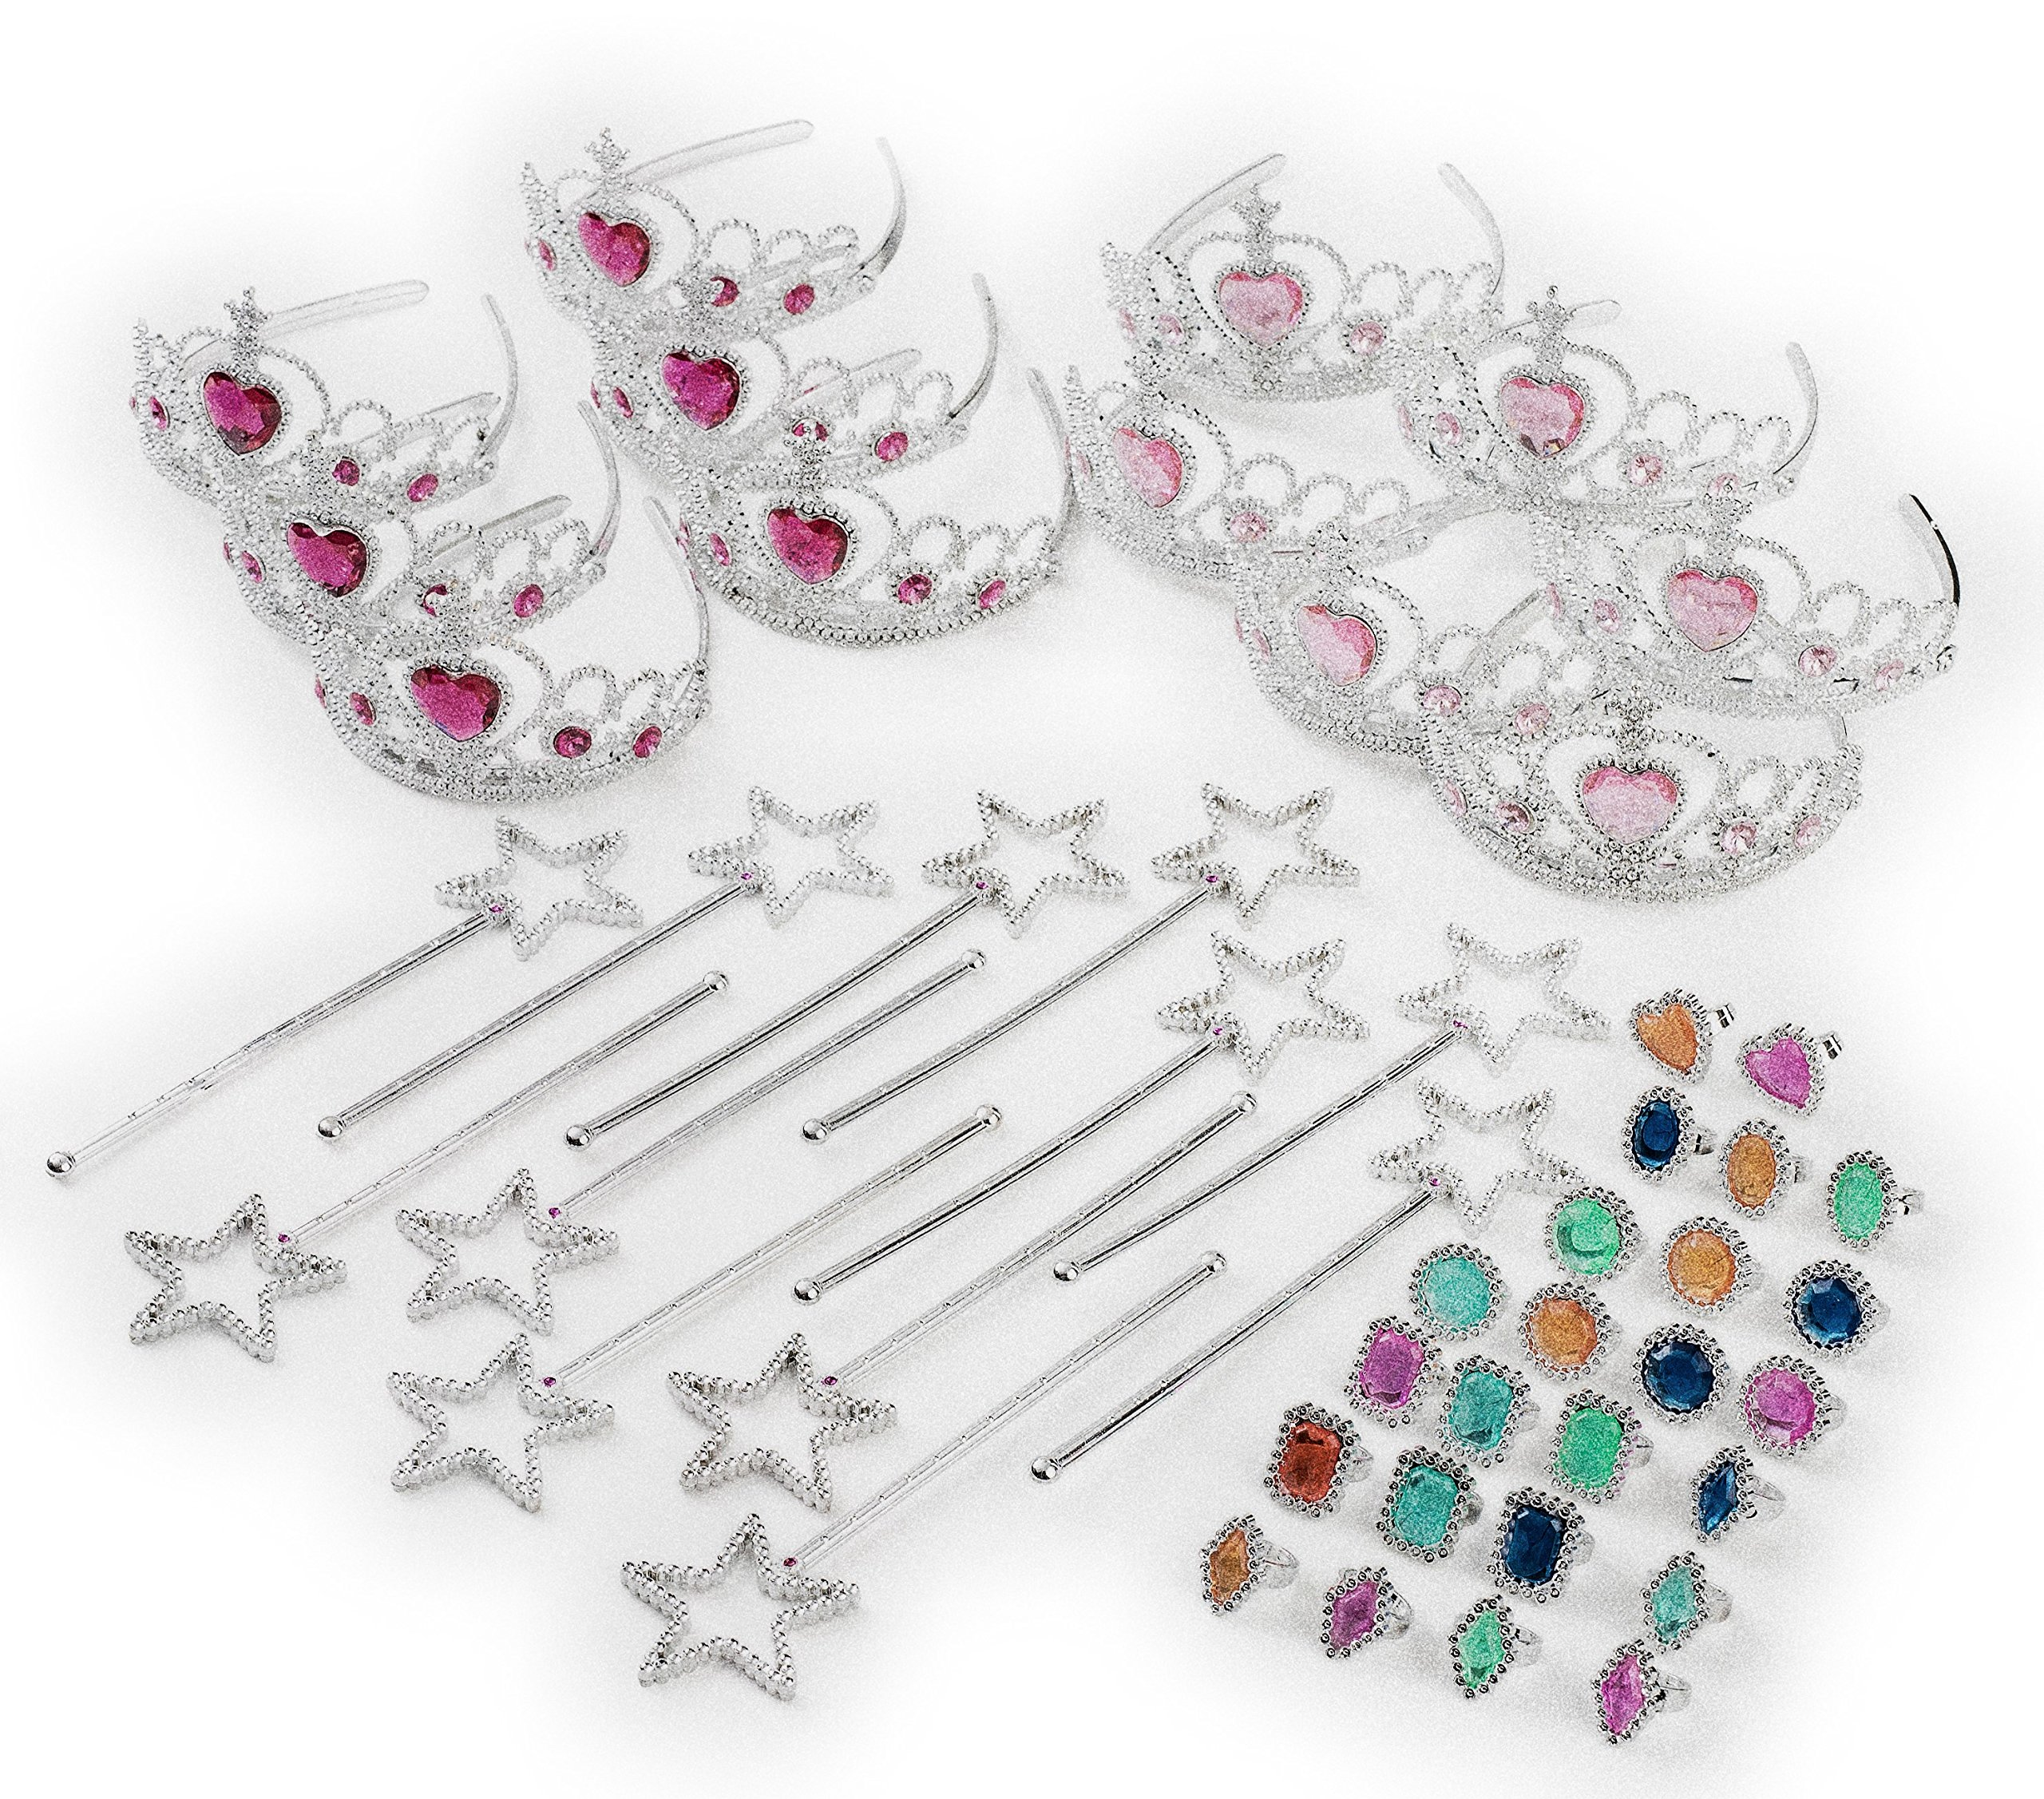 Princess - Tiara Dress Up Play Set - Crowns, Wands, and Jewels - Princess Girls Party Favors - Princess Costume Party Play Set, Includes 12 Princess Crown Tiaras, 12 Wands, 24 Asst Rings Mega 48 Piece